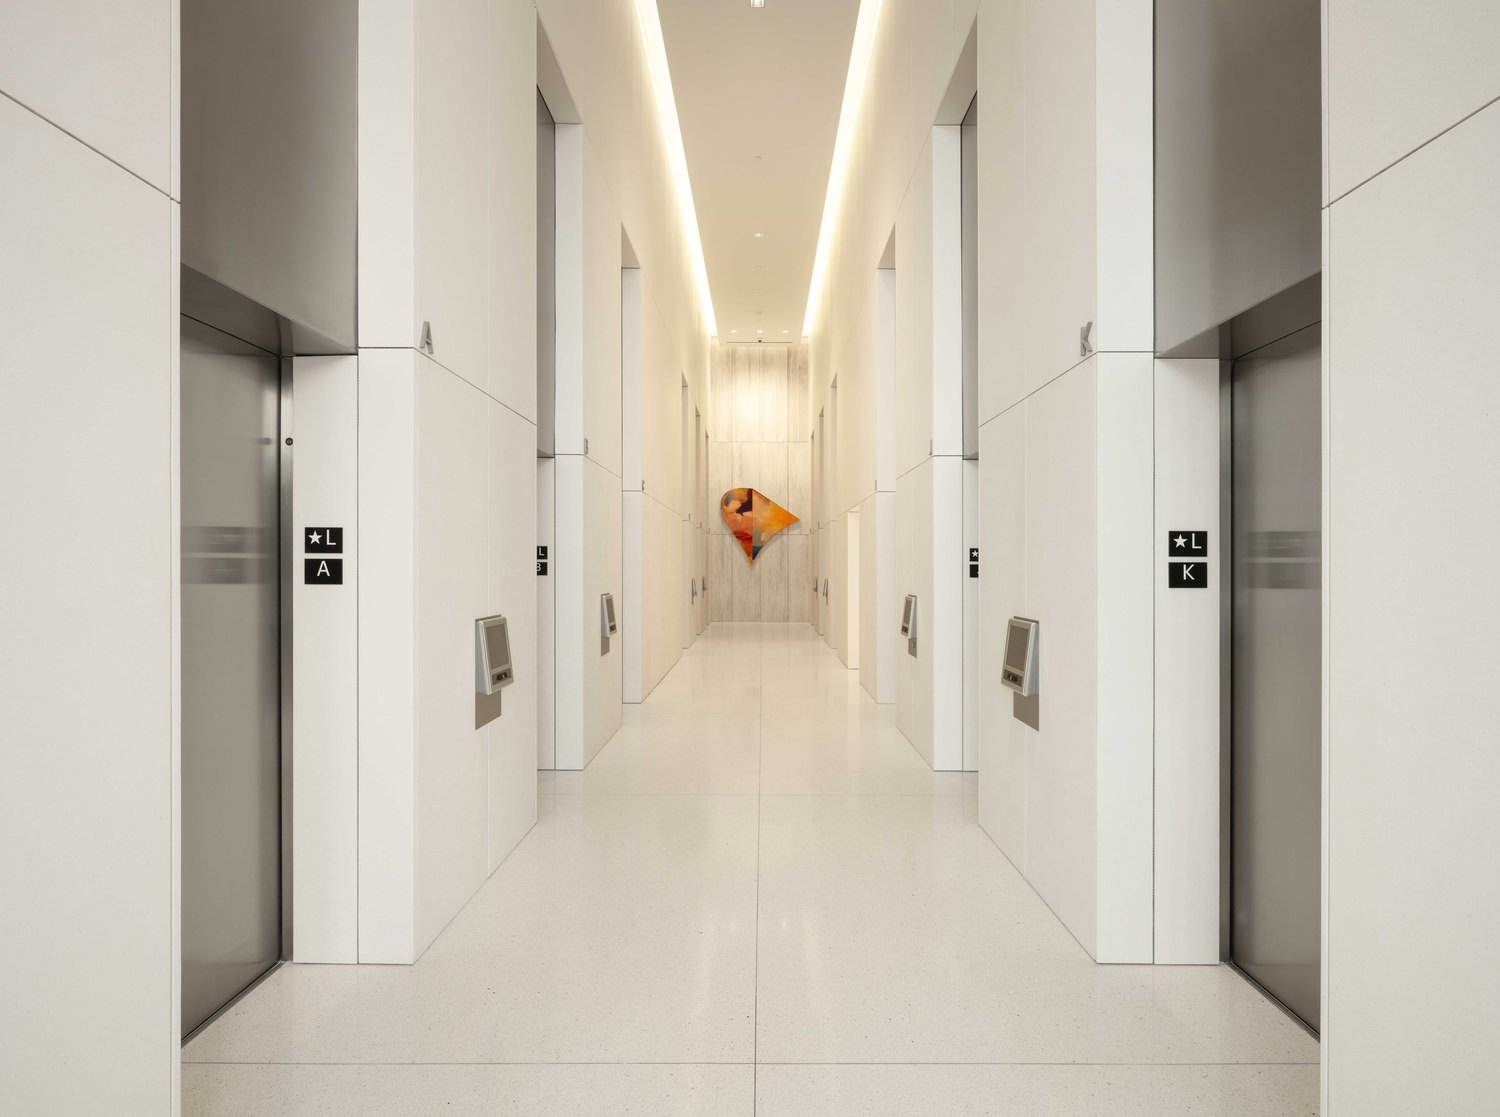 A hallway in an office building that has some elevators on either side of it and some white walls.